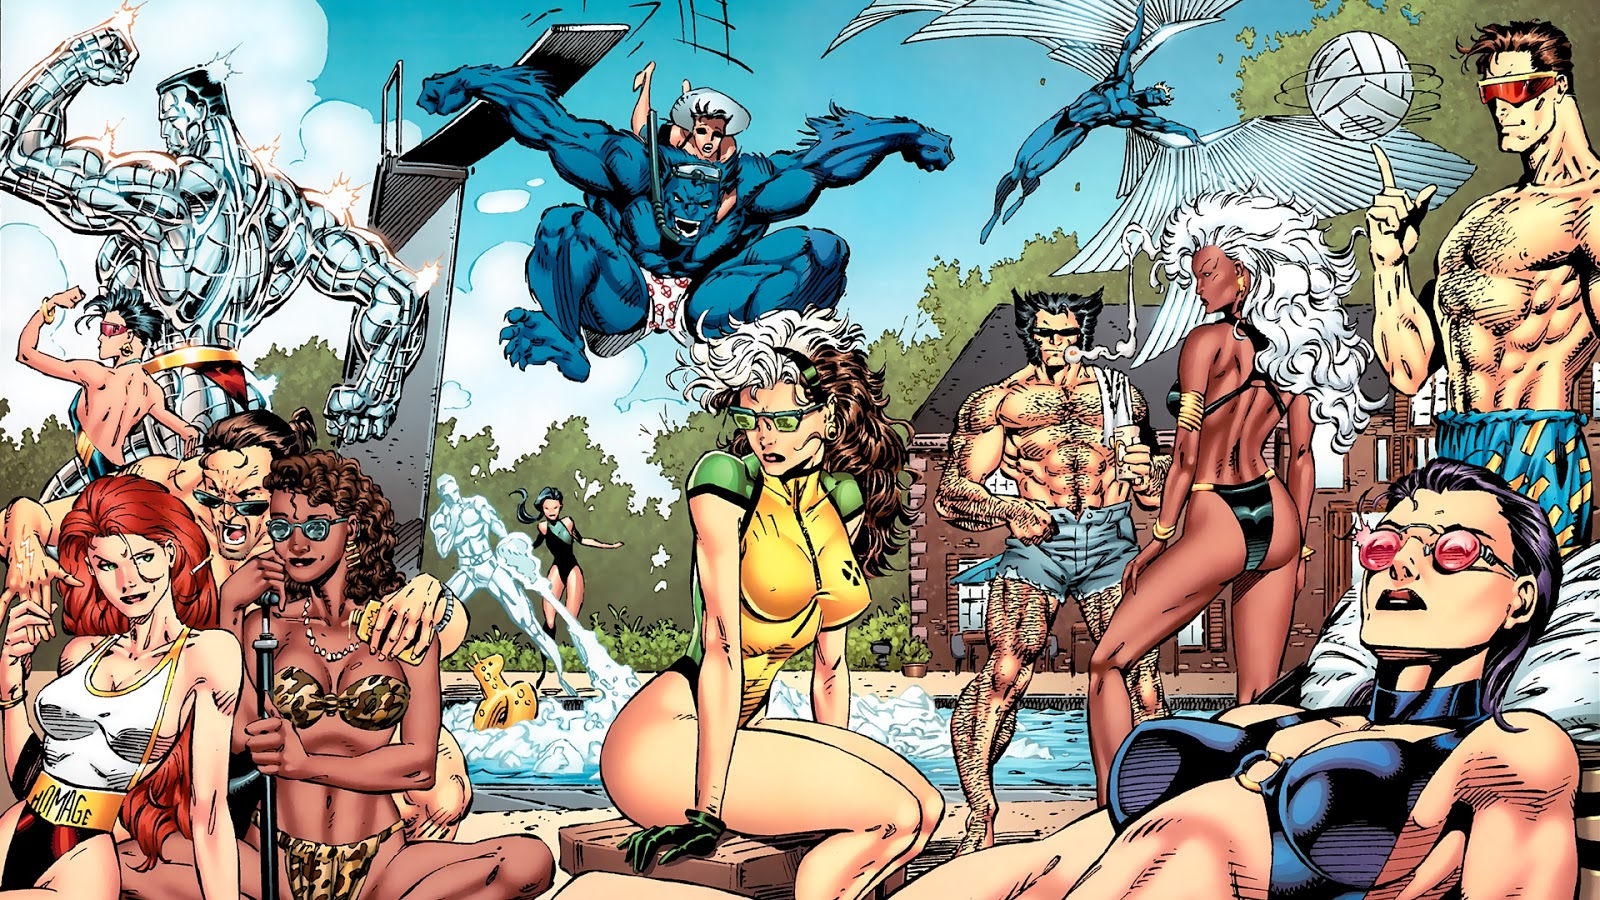 X Men Comic Wallpaper, PC X Men Comic Superb Pics (NMgnCP com)